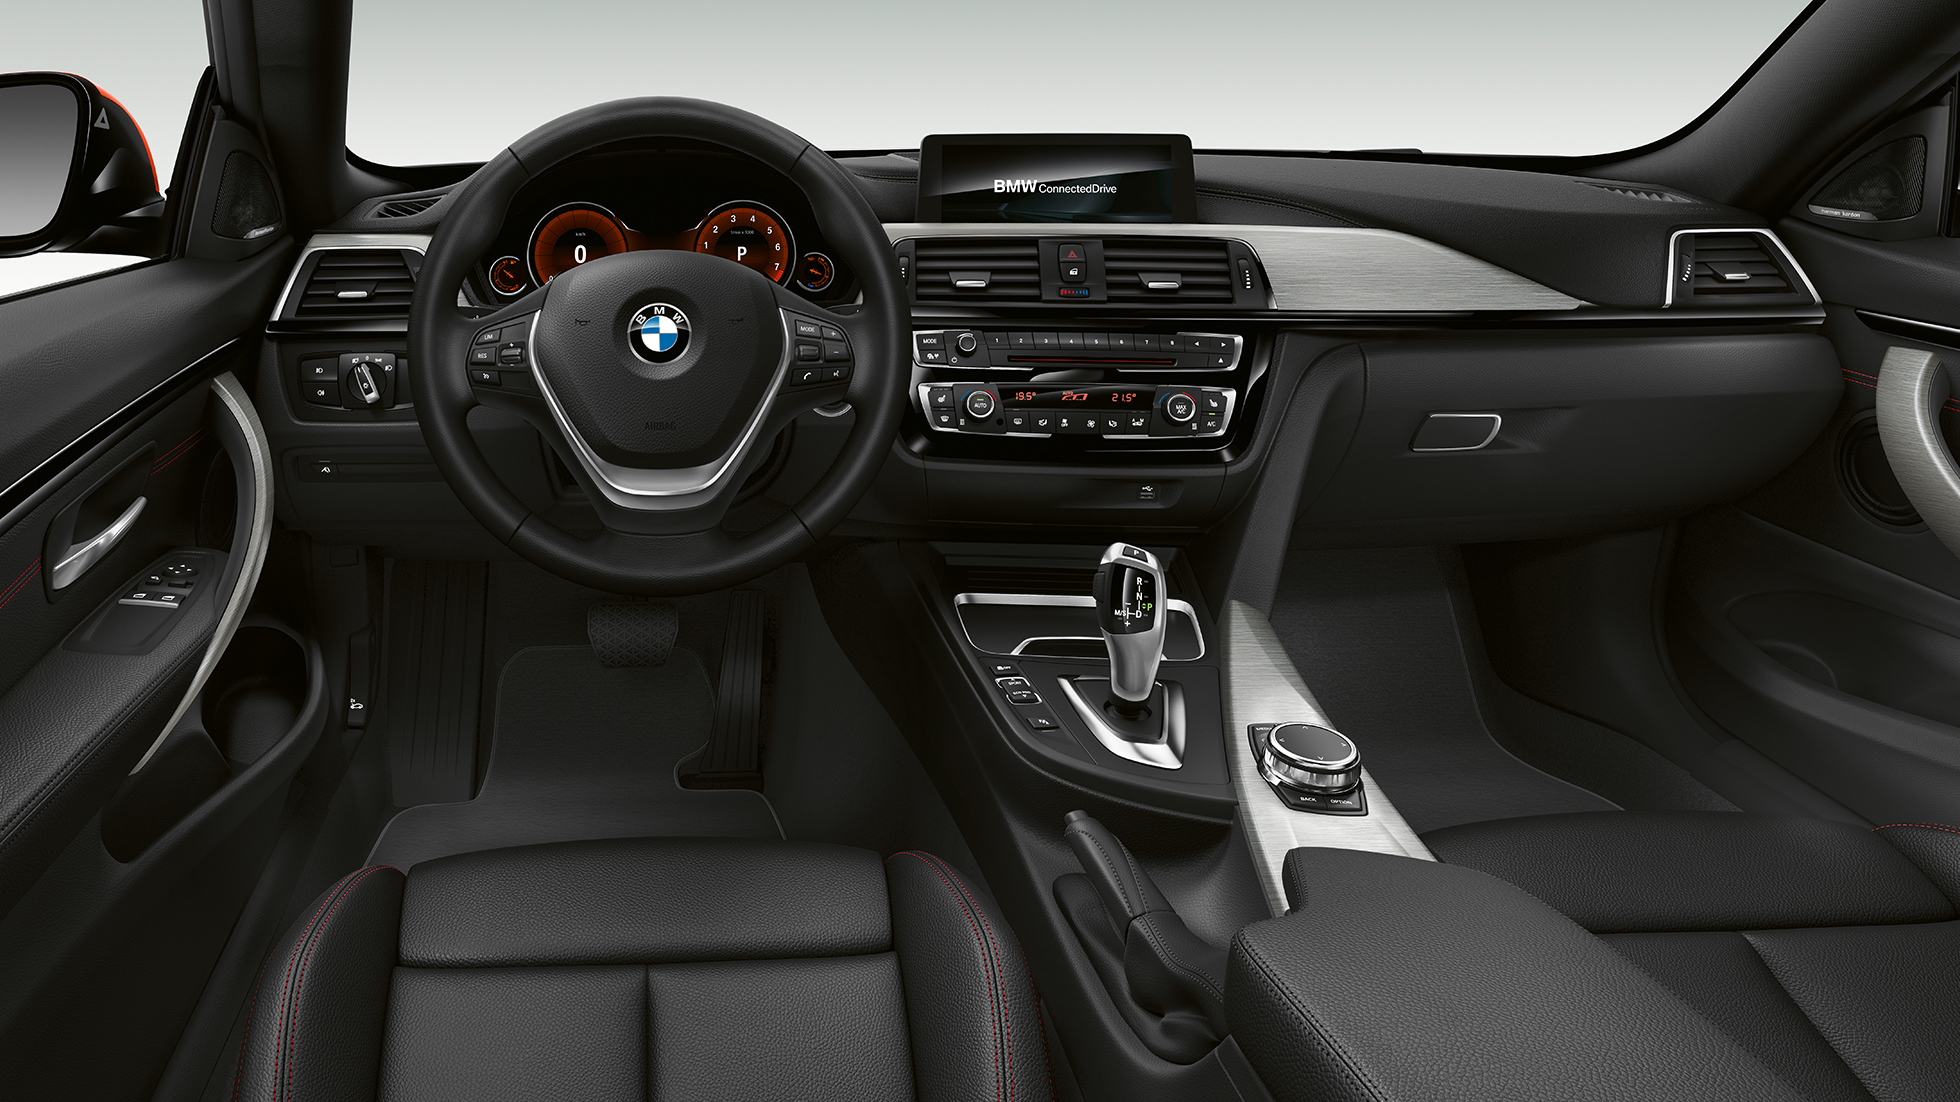 BMW 4 Series Coupé, Model Sport Line cockpit